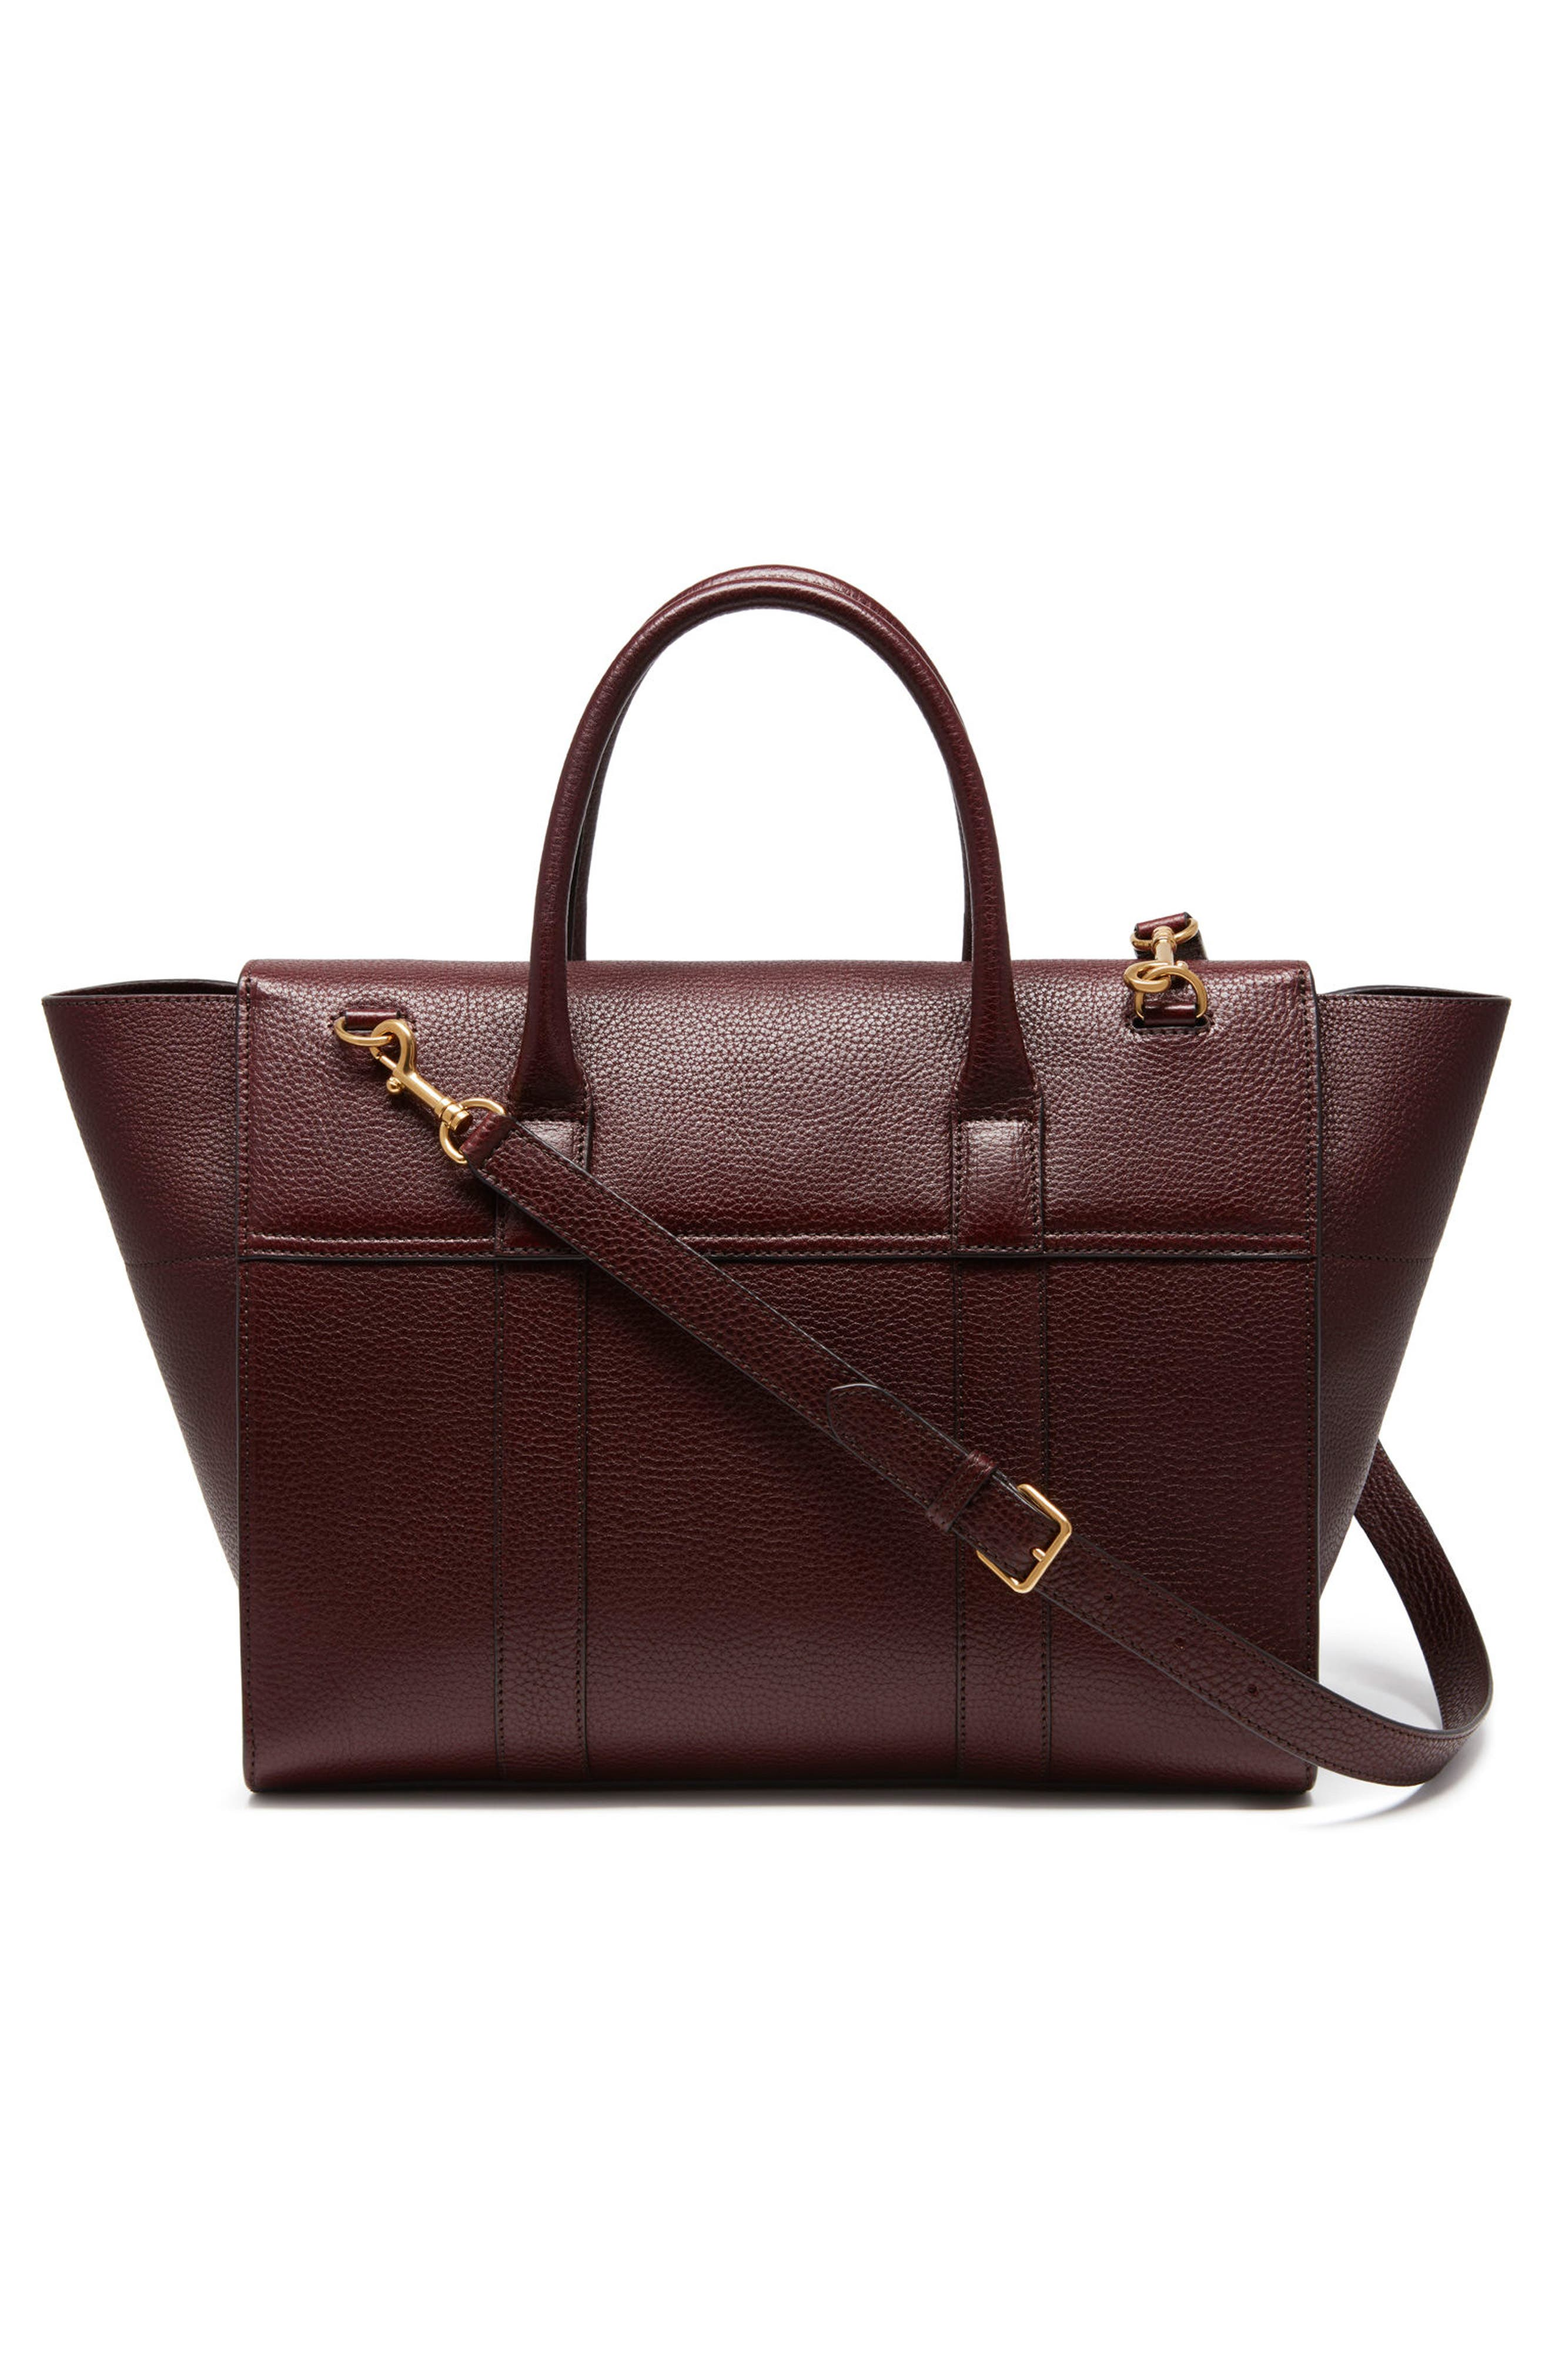 Bayswater Calfskin Leather Satchel,                             Alternate thumbnail 2, color,